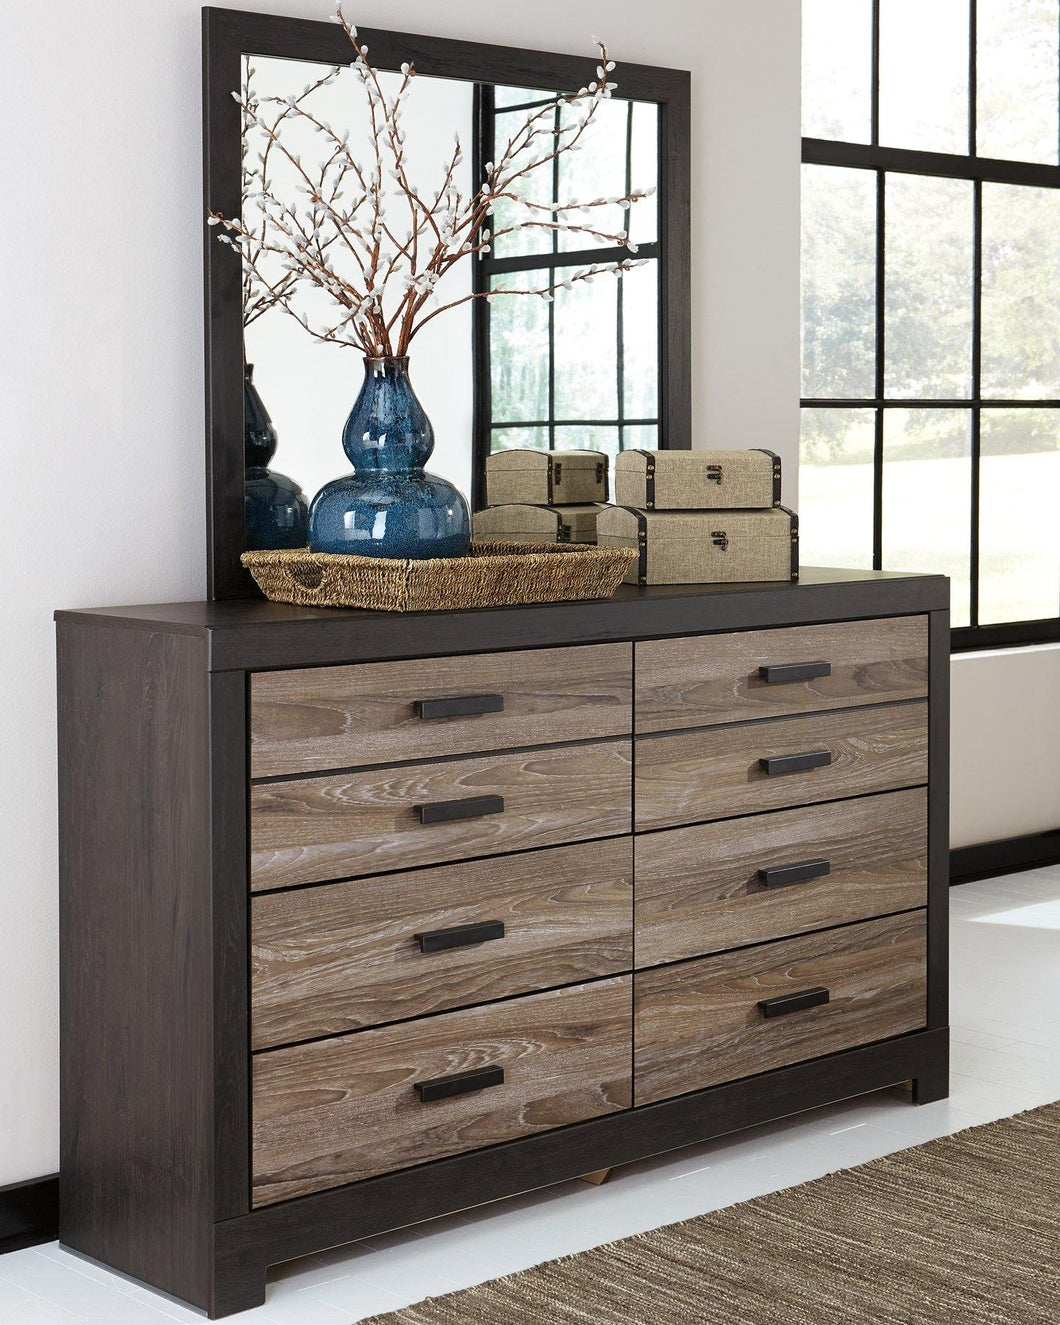 Harlinton Dresser and Mirror B325B1 By Ashley Furniture from sofafair